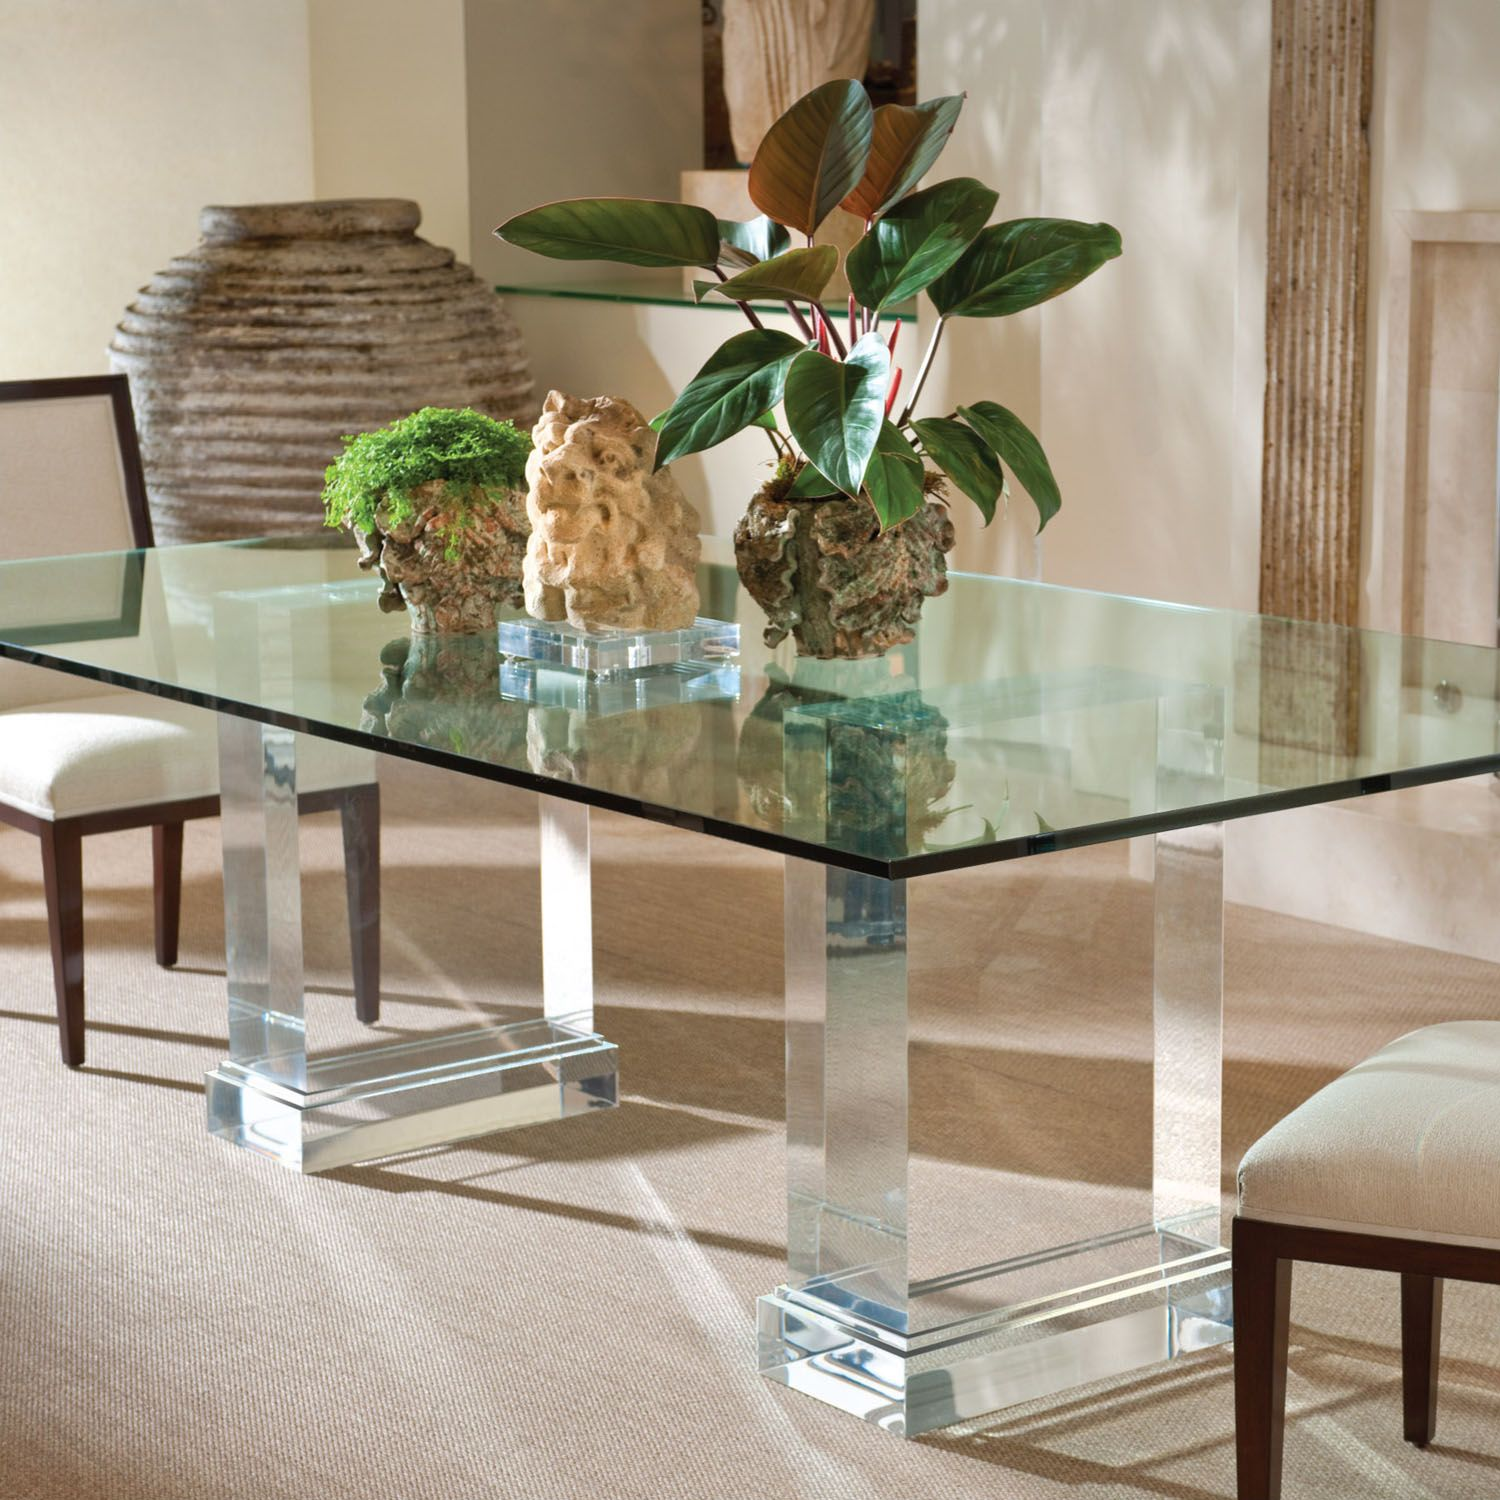 How to build a table base for a round table - Leveling Pedestal Table Base Http Tabledesign Backtobosnia Com Leveling